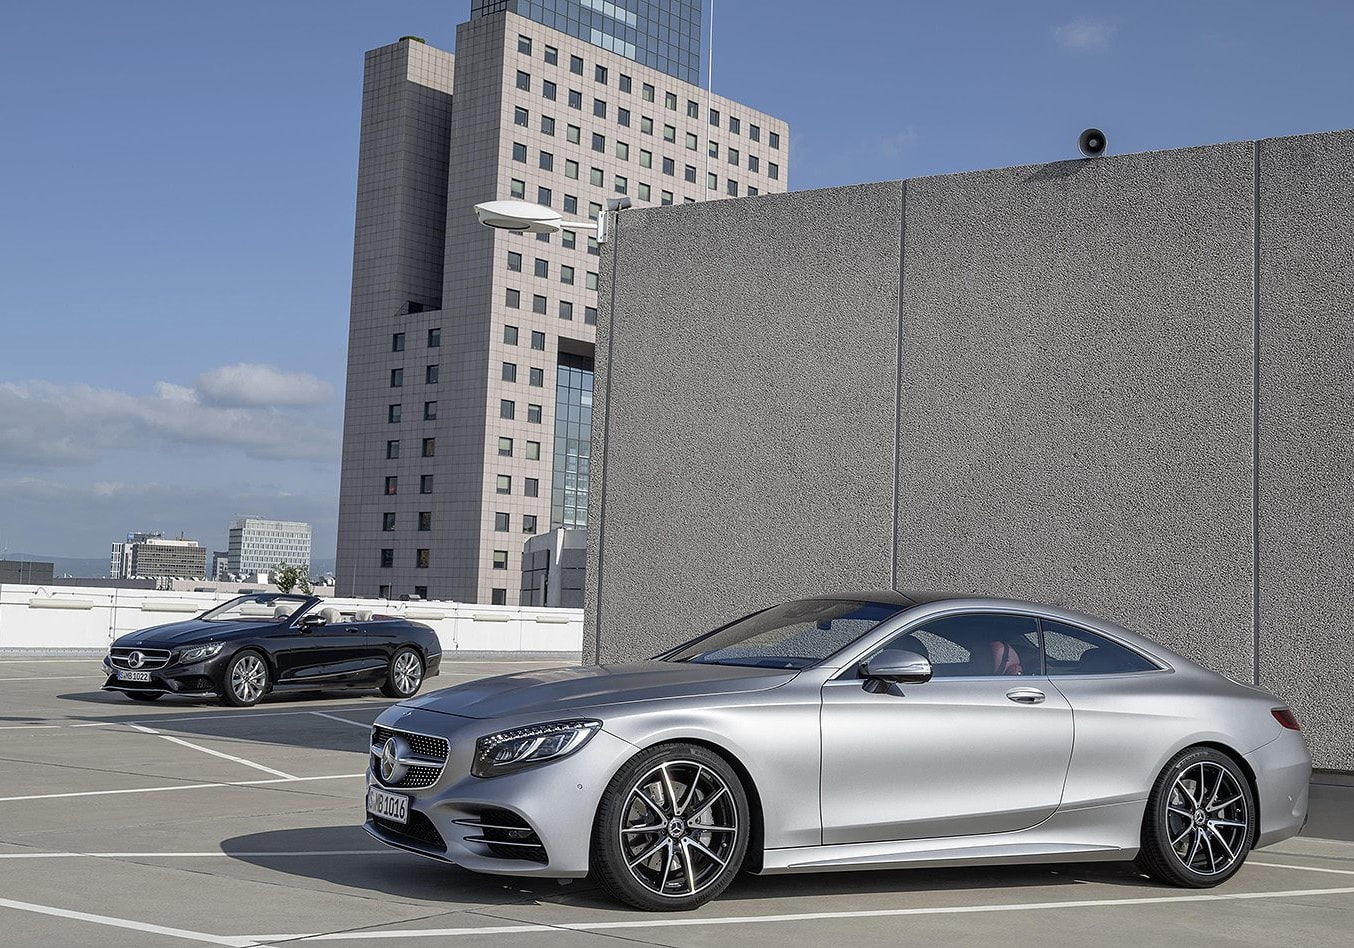 S Class Coupe Cabriolet Main Pic Jpg